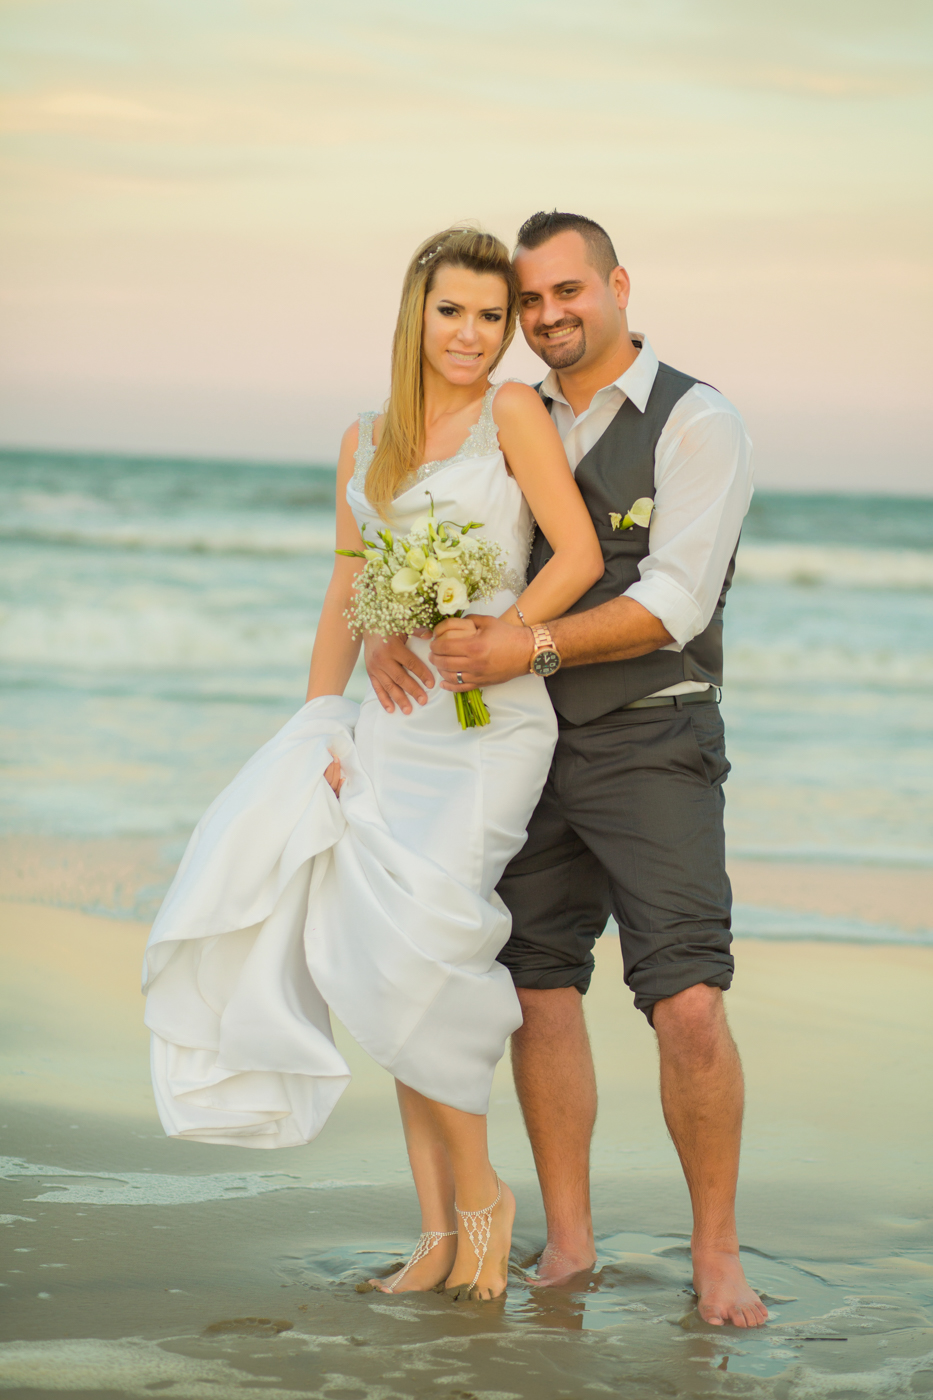 Beautiful Brazilian Beach Wedding North Carolina-Ksenia-Pro-Photography-59